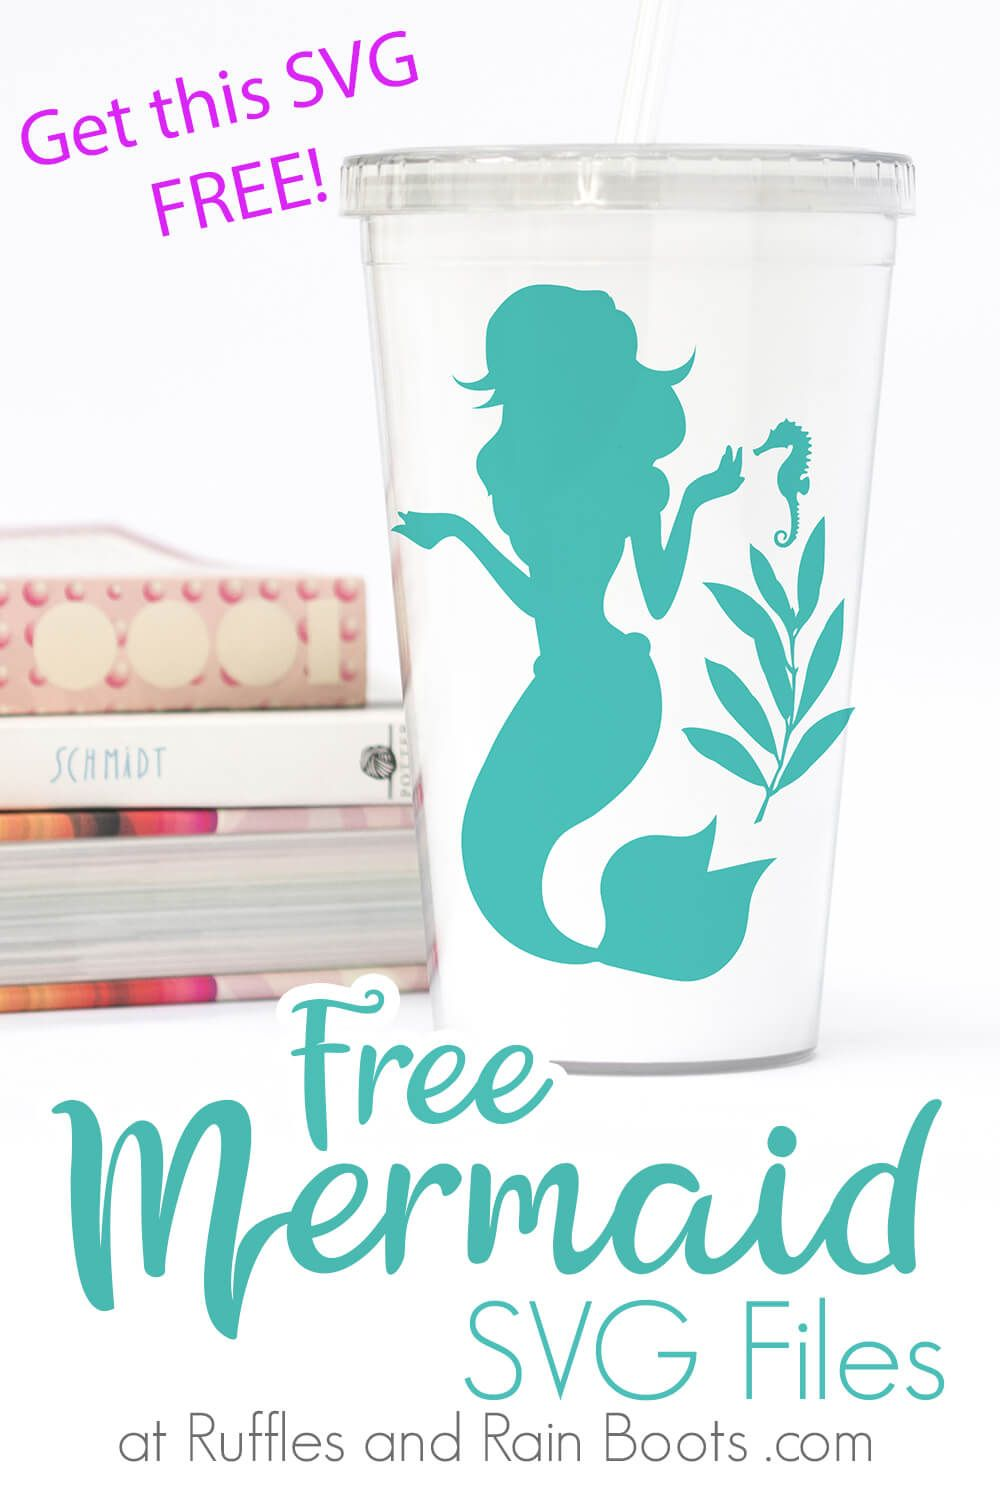 Free Mermaid Svgs Fonts And Graphics For Crafts And Gifts Mermaid Svg Cricut Free Cricut Svg